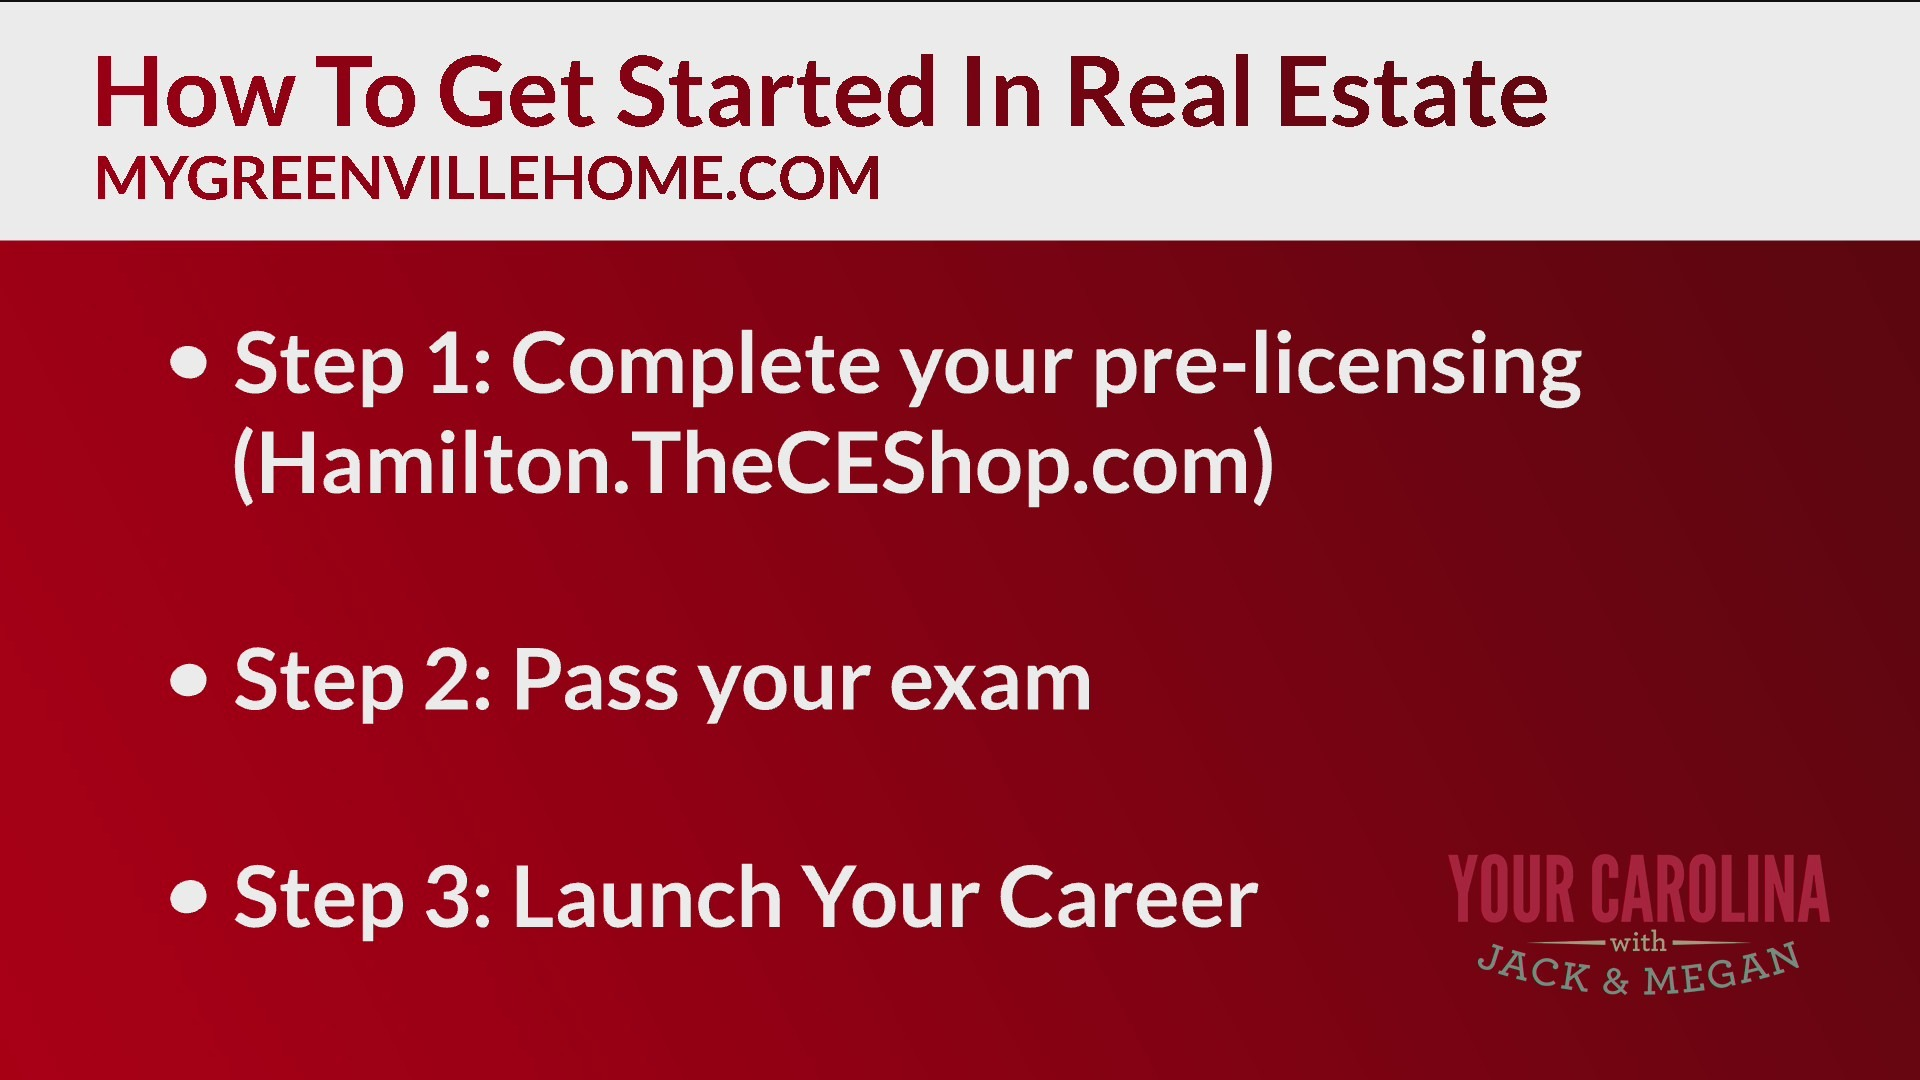 Upstate Homes - Real Estate Jobs